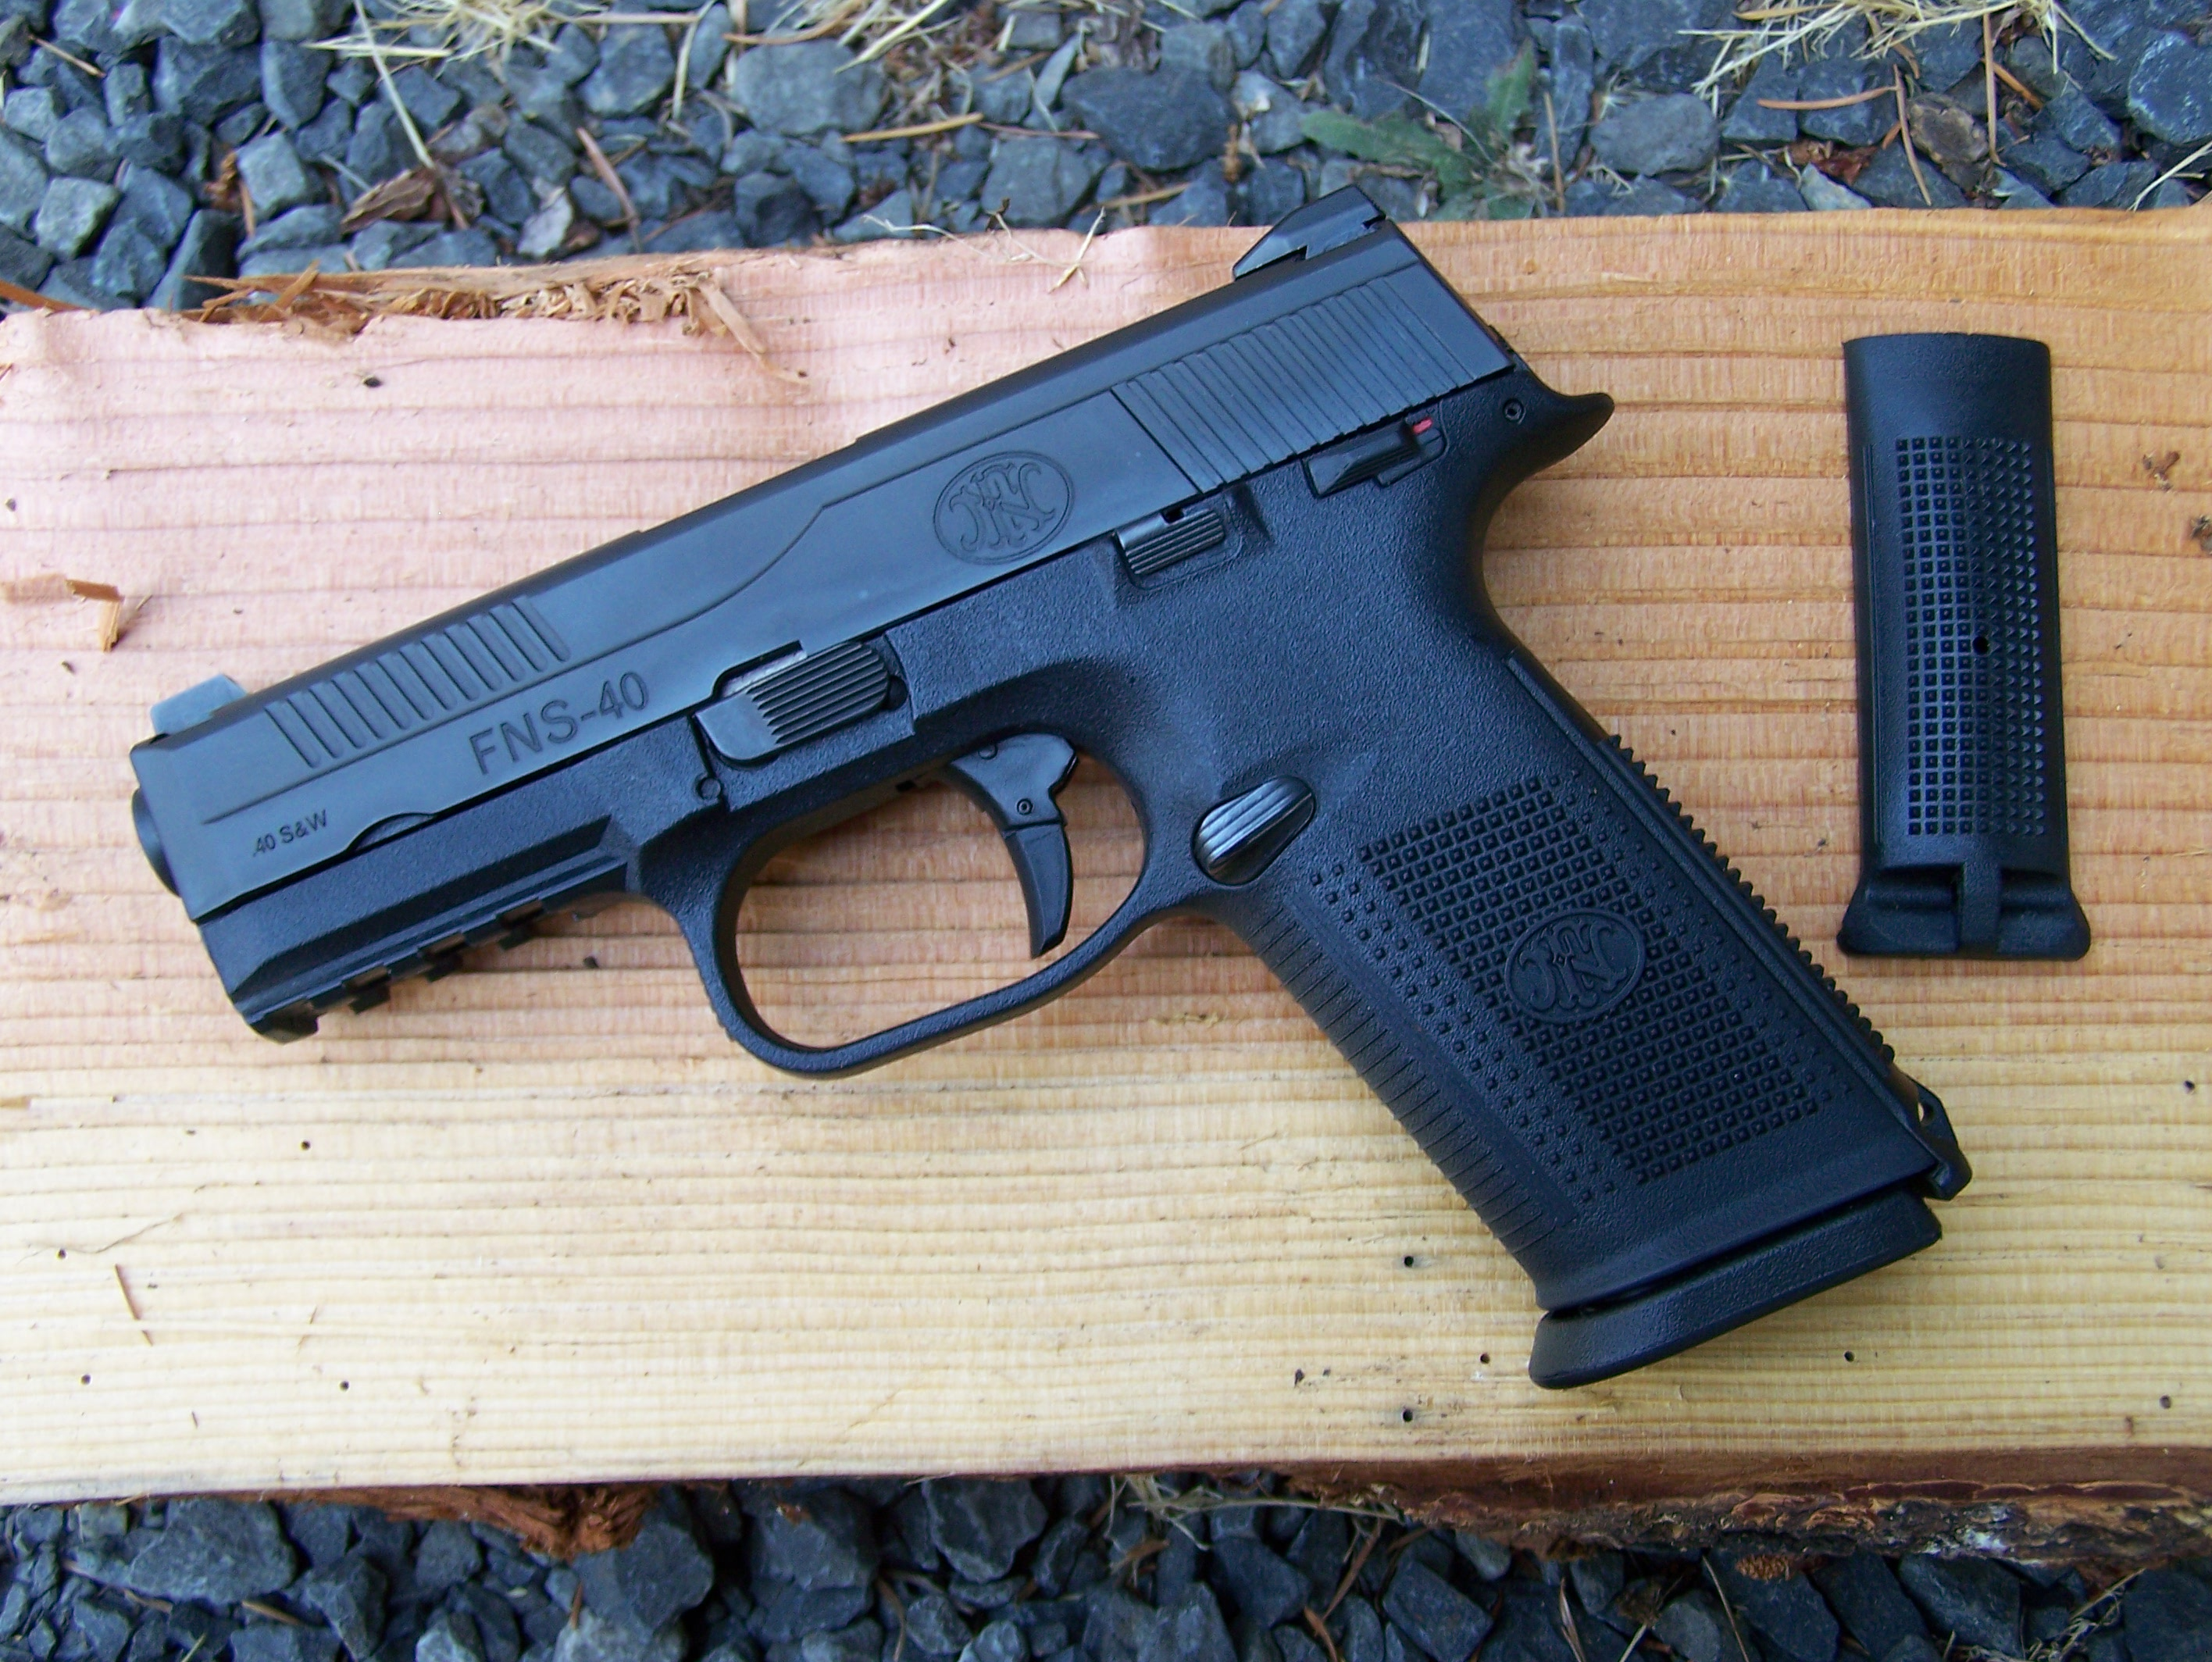 Review: FN FNS Semi-Automatic Pistol in 40 S&W